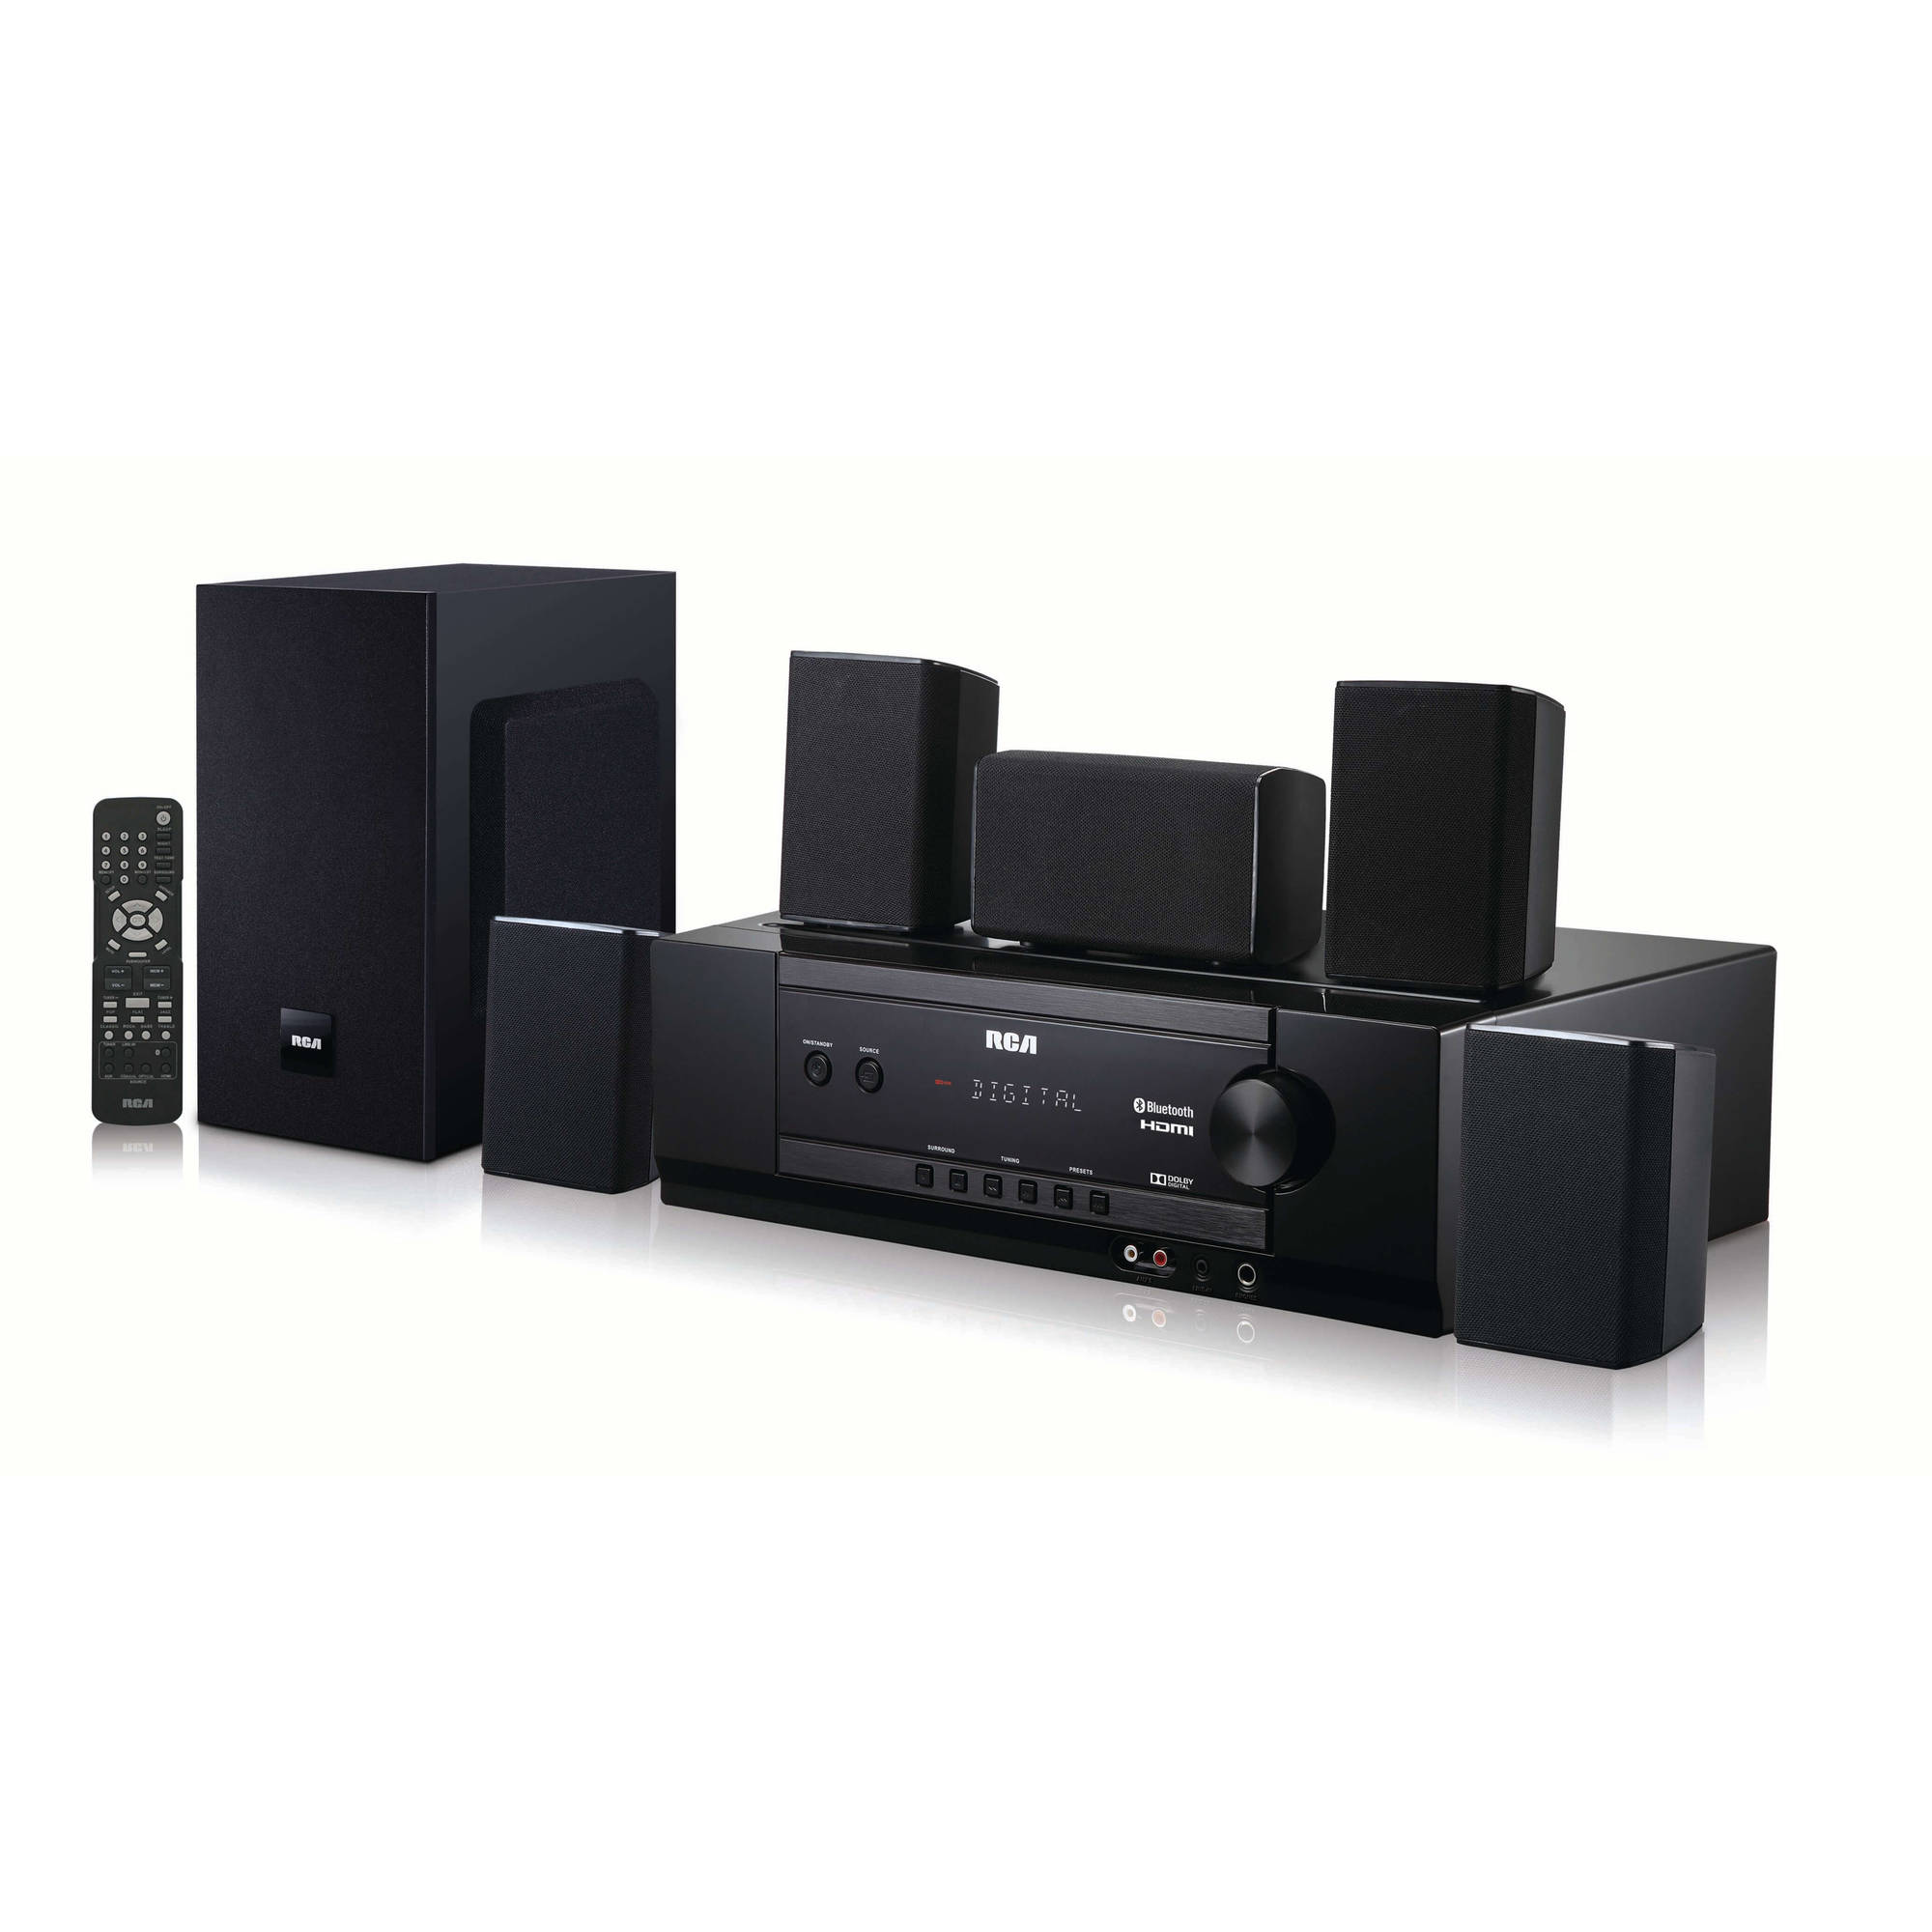 Venturer Electronics Rca Bluetooth Home Theater System